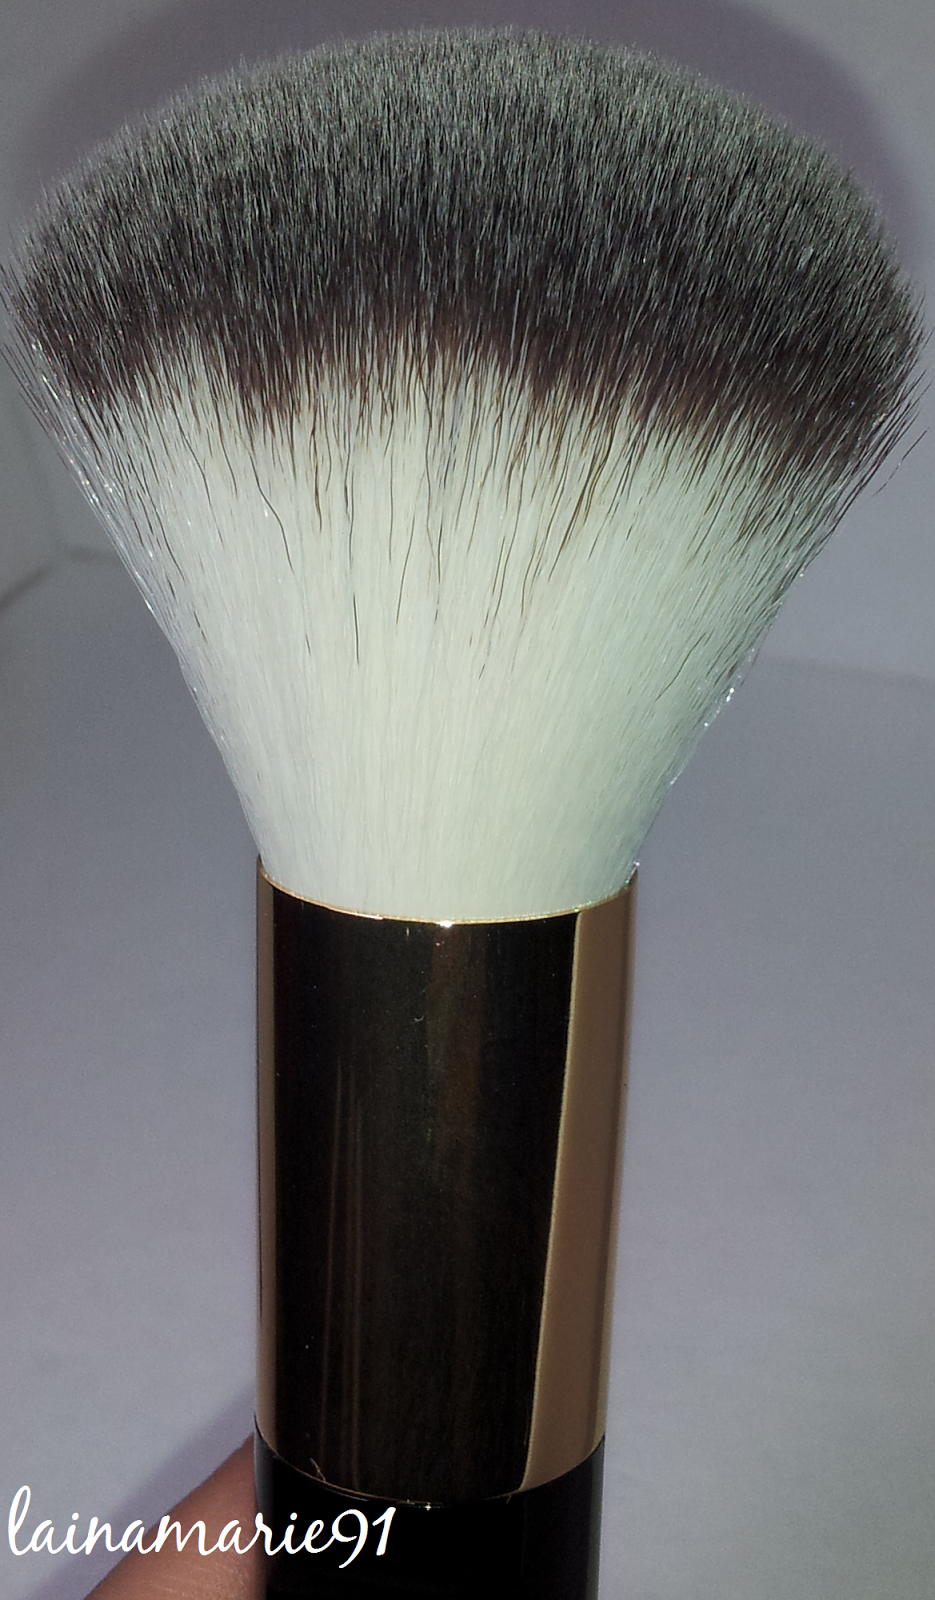 d691eeefa4c7 Lainamarie91: New Flower Beauty Ultimate Makeup Brushes : Review ...